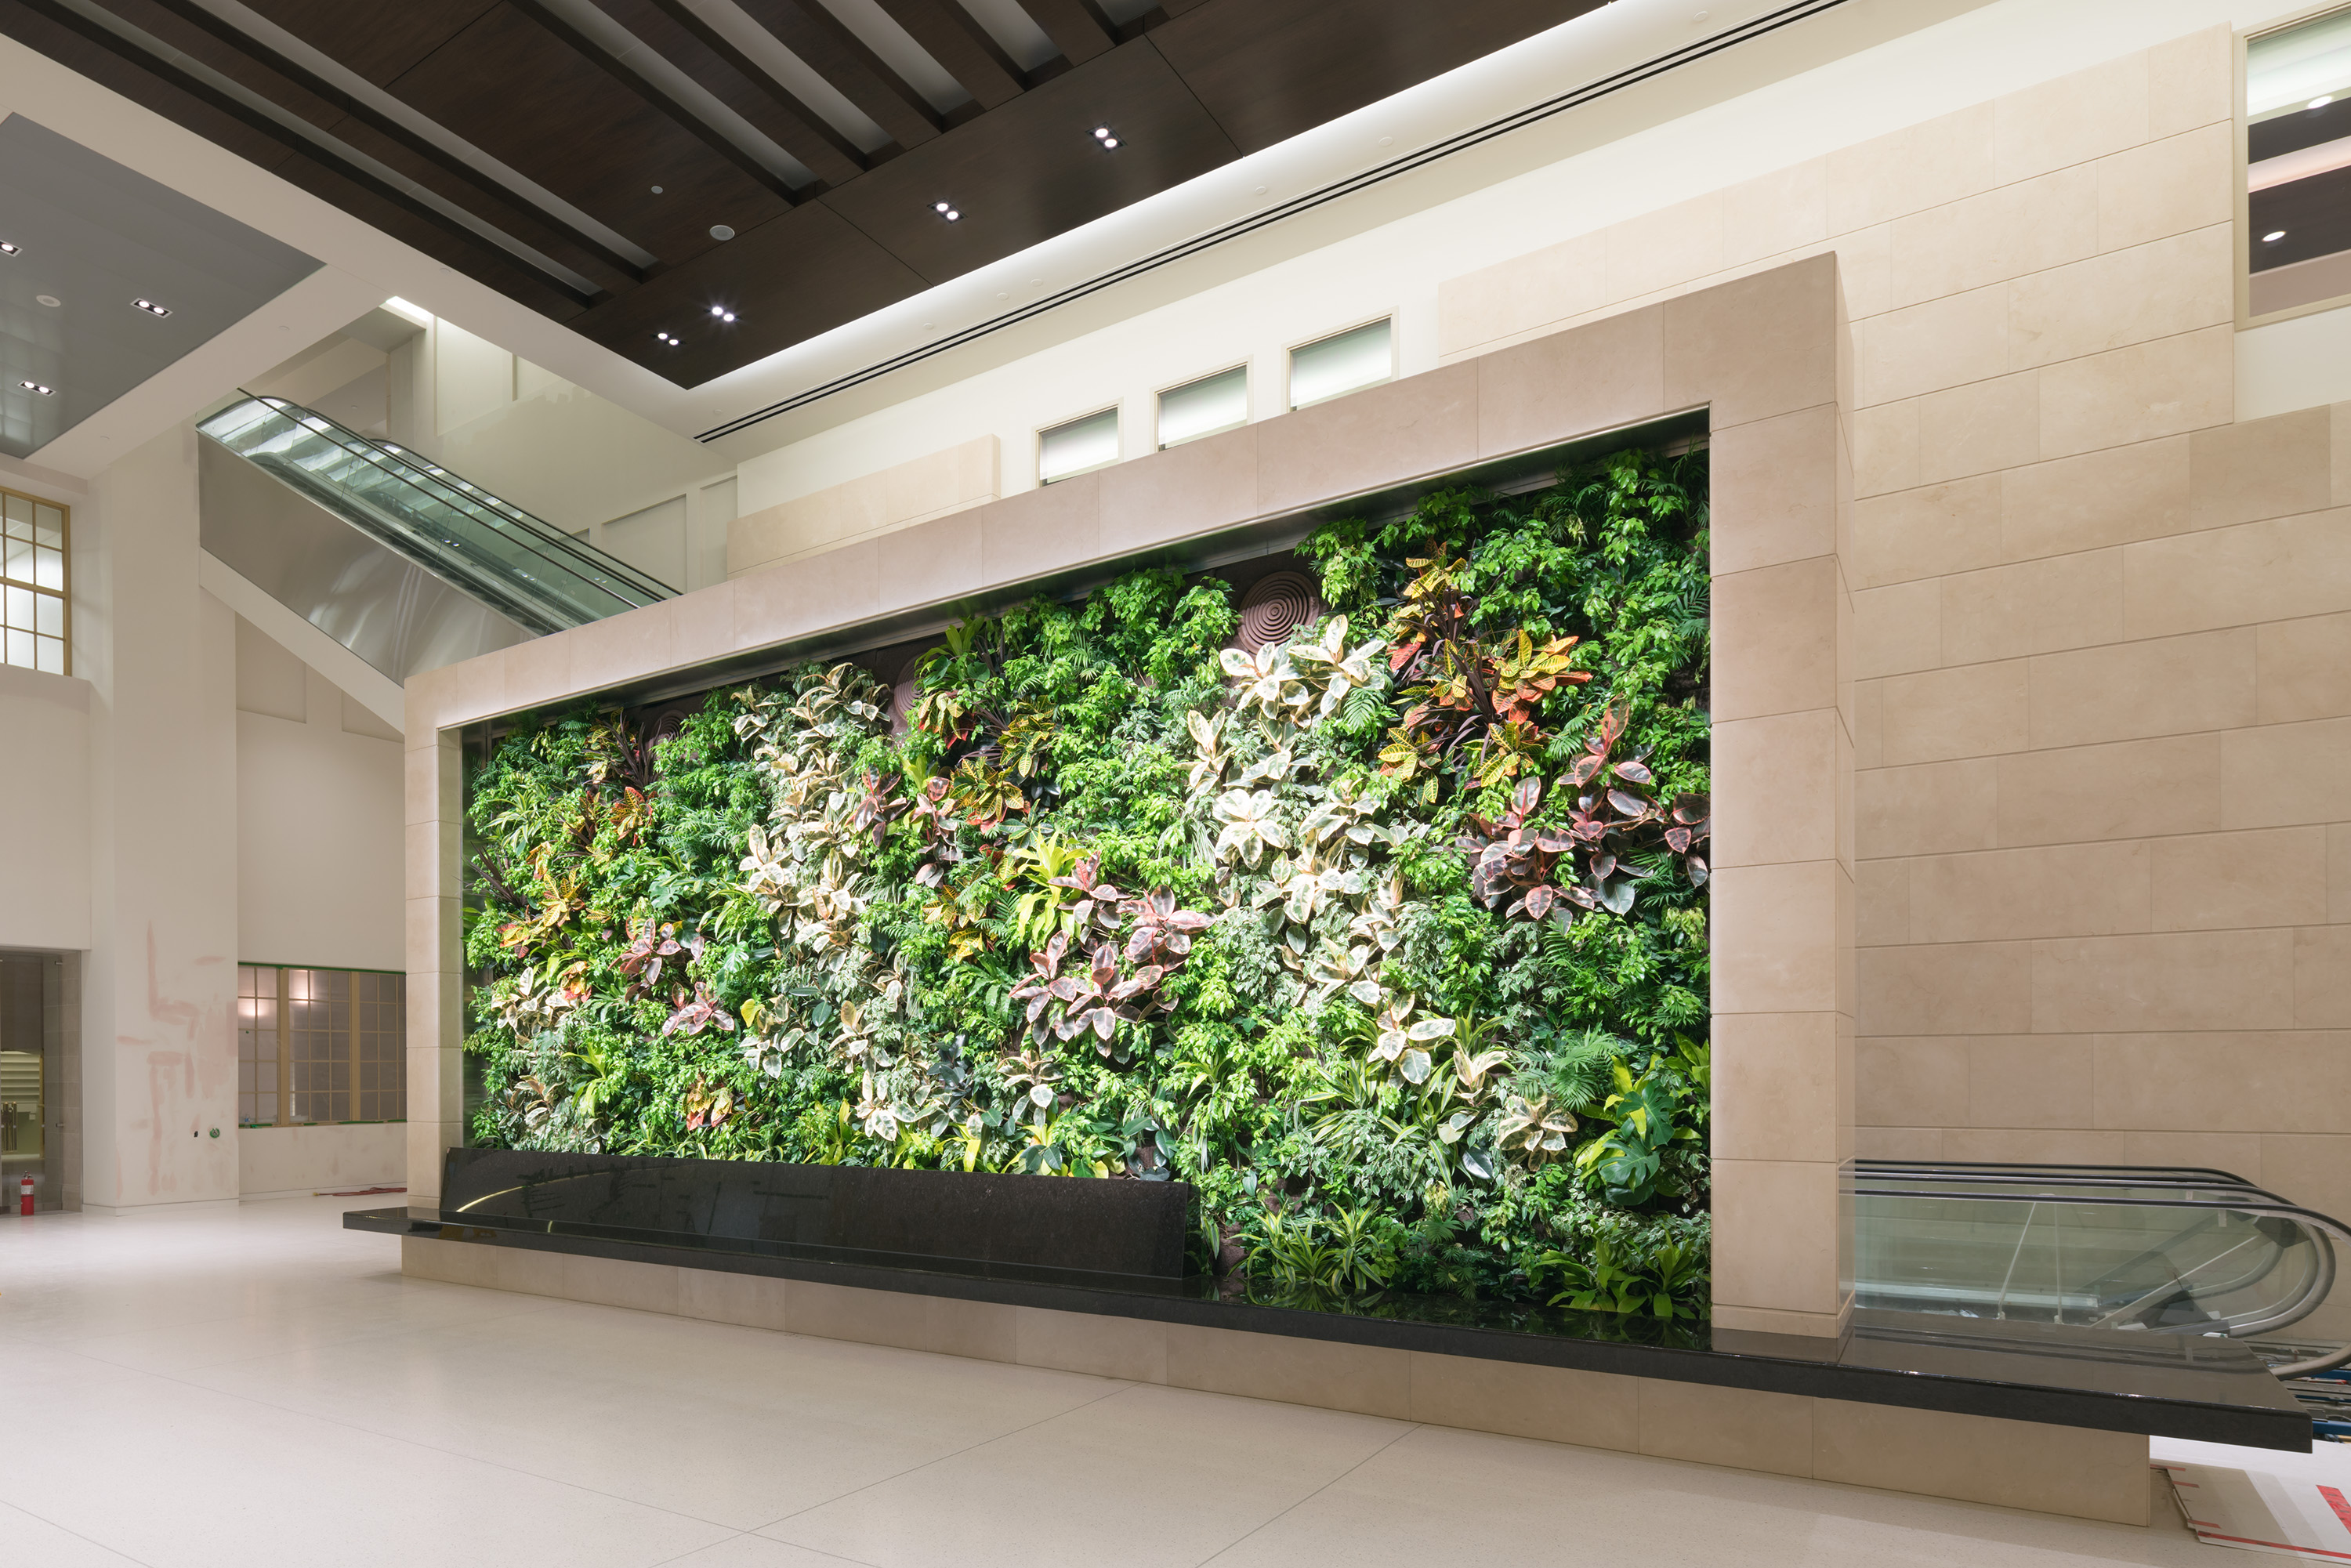 View enlarged image of the centerpiece of the atrium, a green wall of plants.